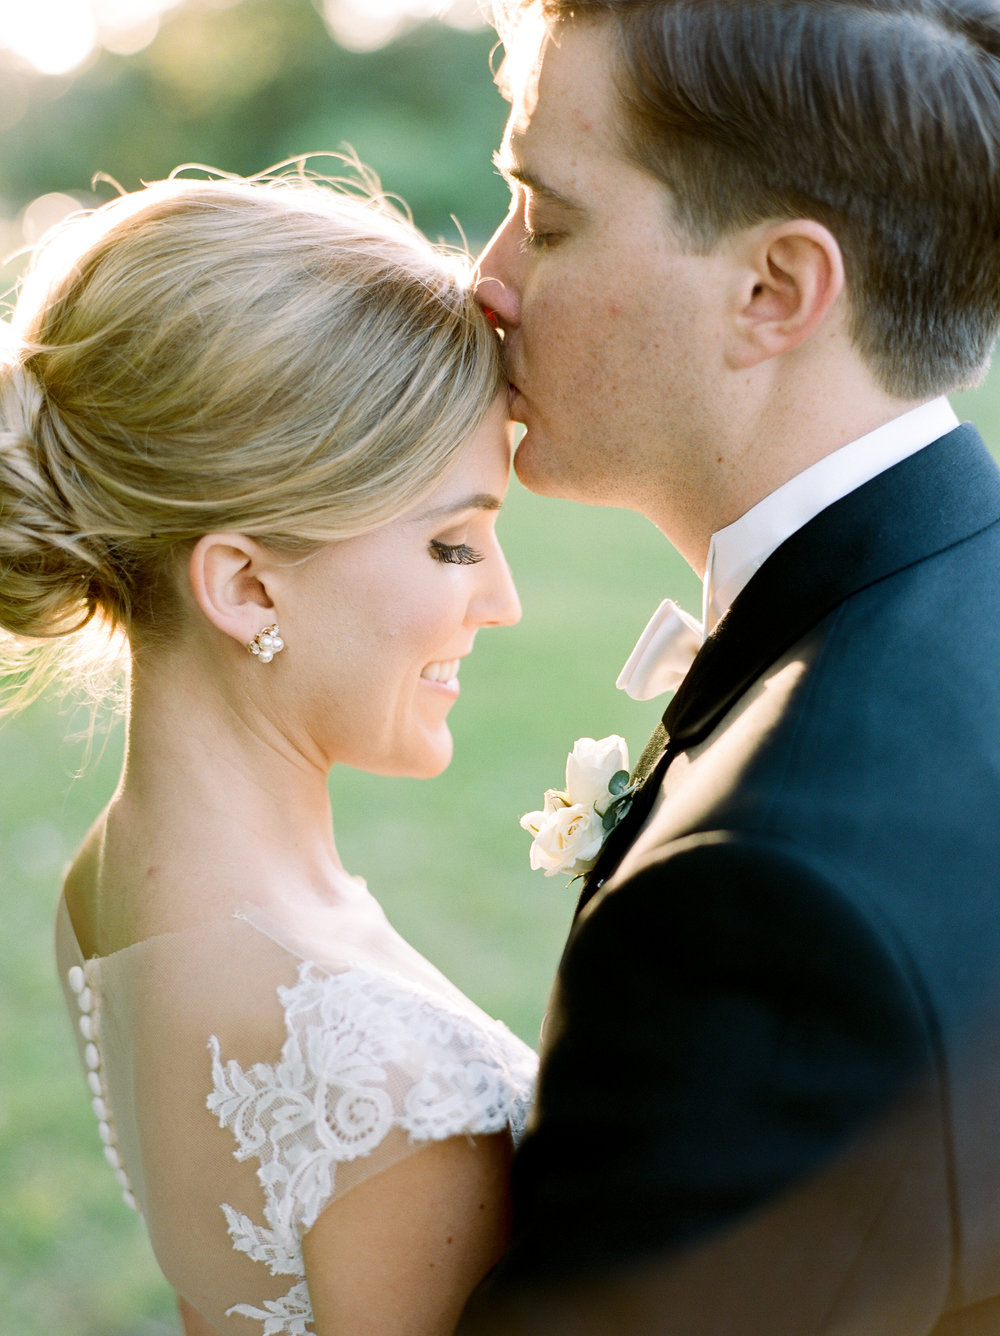 Maxit-Flower-Design-Bride-Groom-Kiss-Wedding.jpg